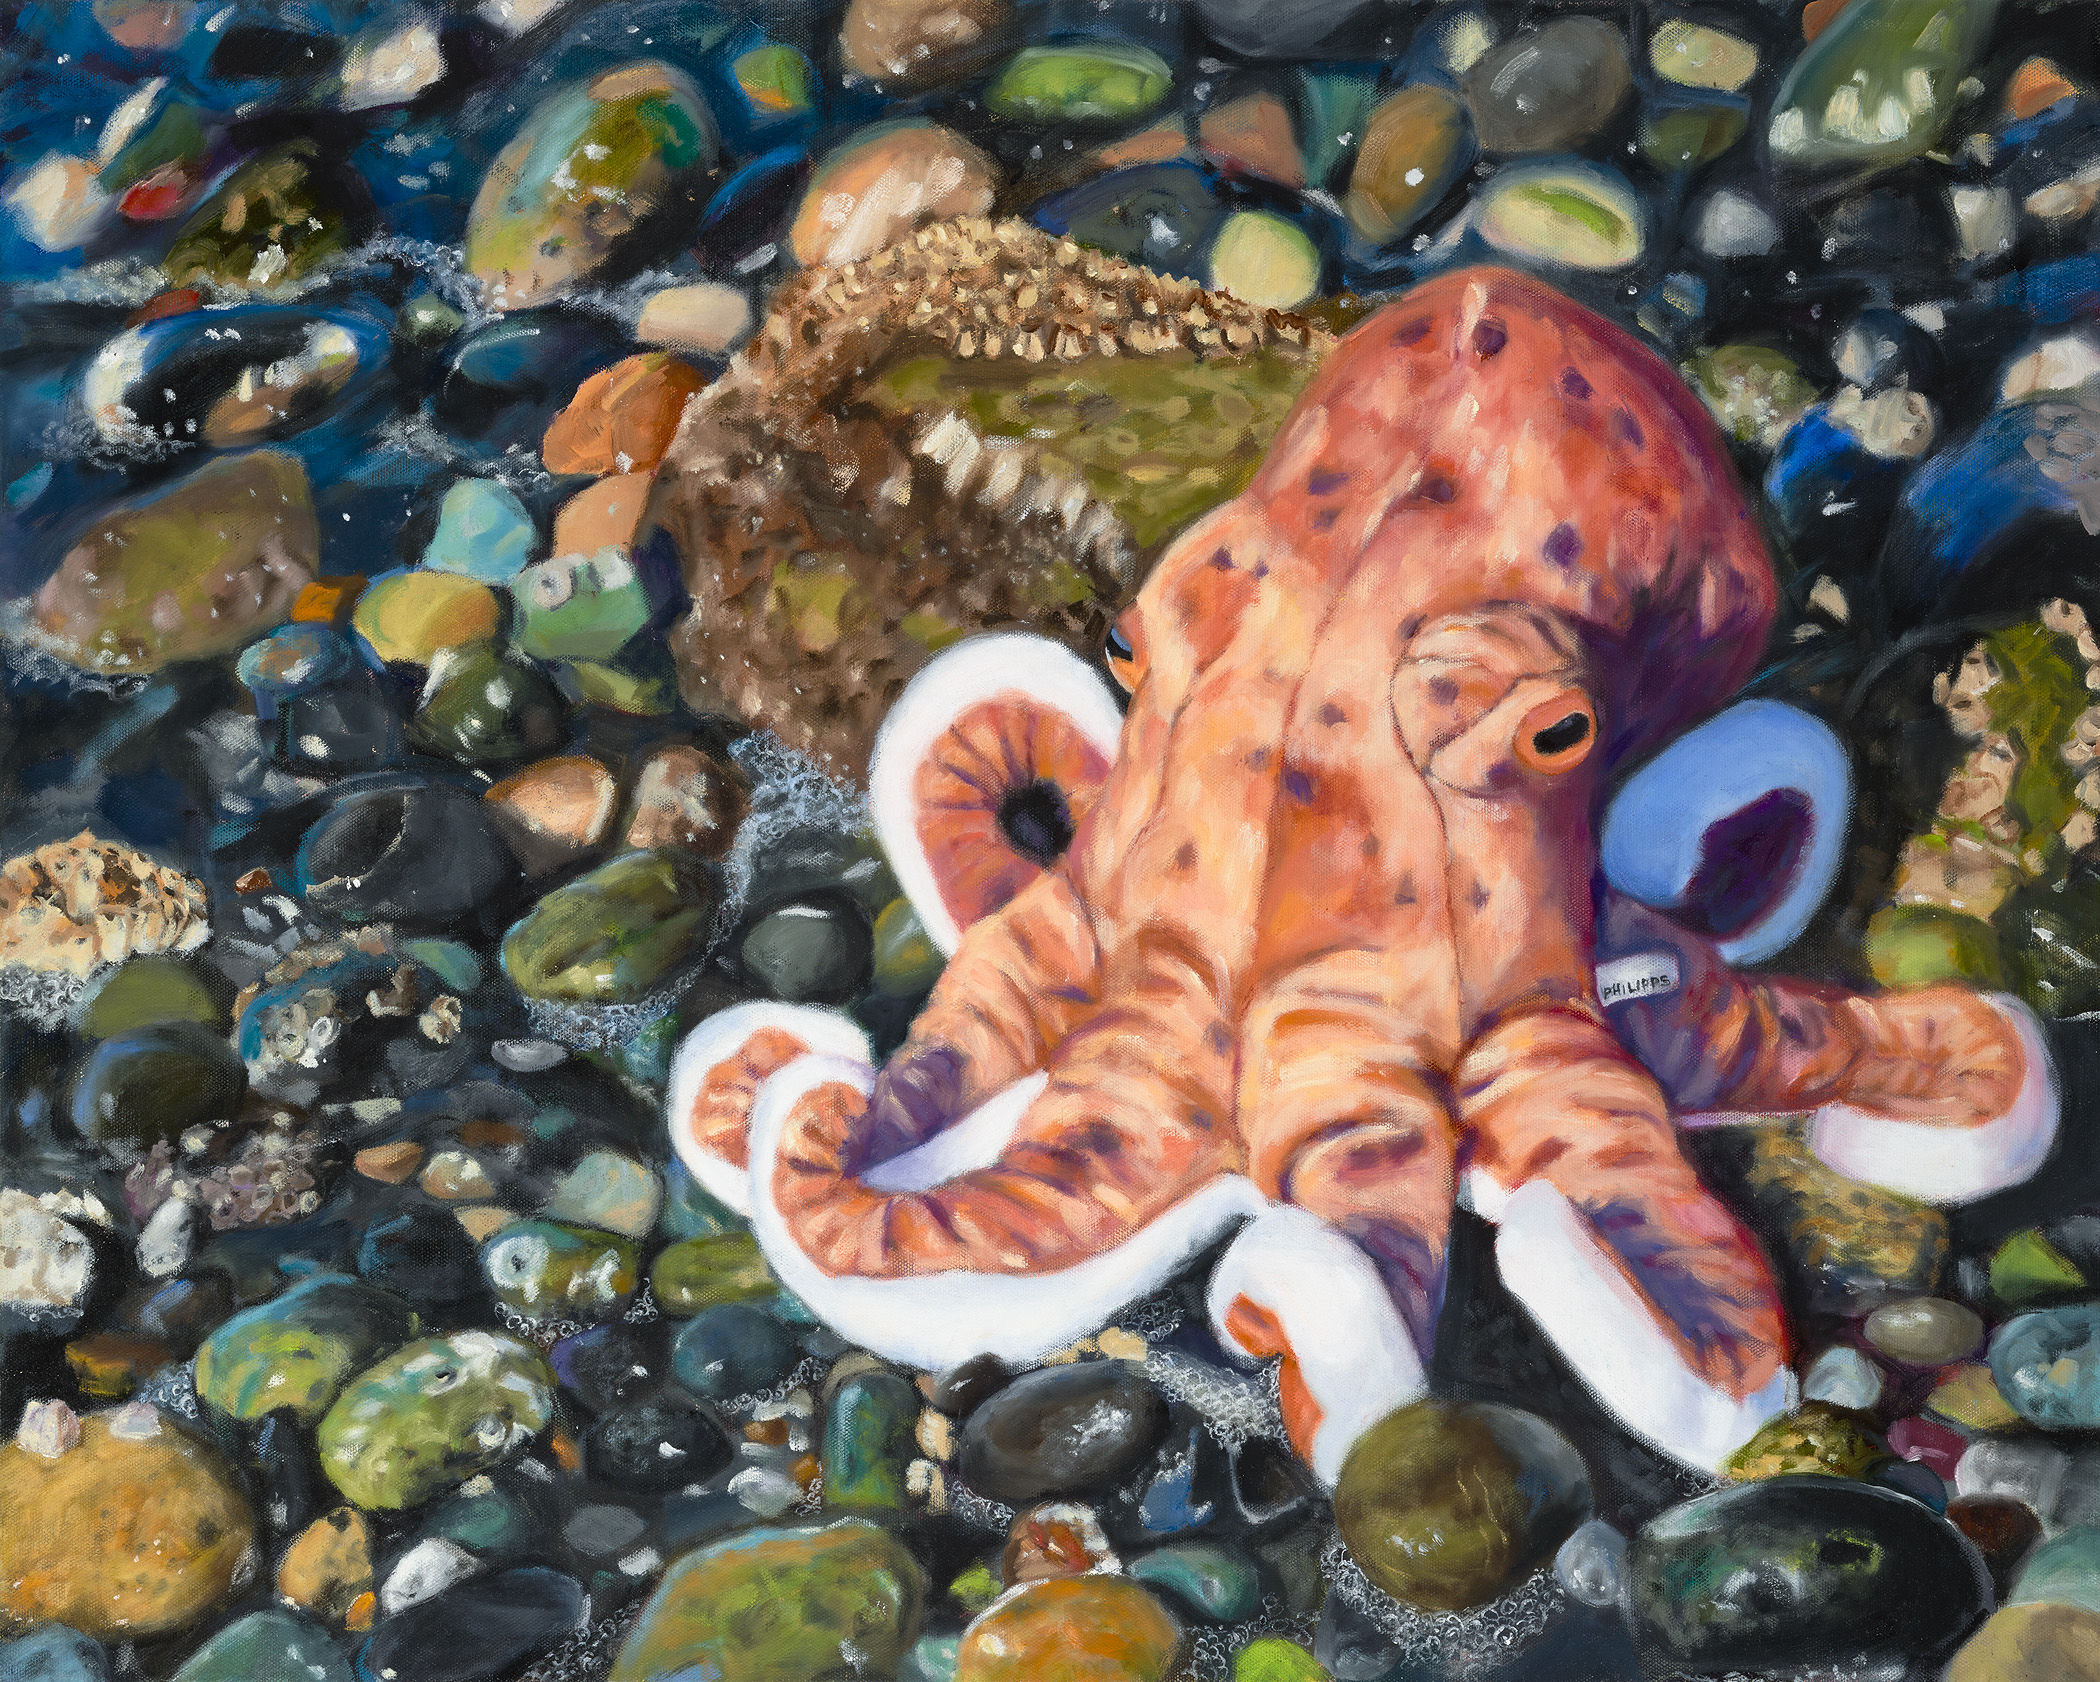 """Last Call: Giant Pacific Octopus"", Oil on Gallery Wrapped Canvas, copyright Lisa Philipps, 2019."